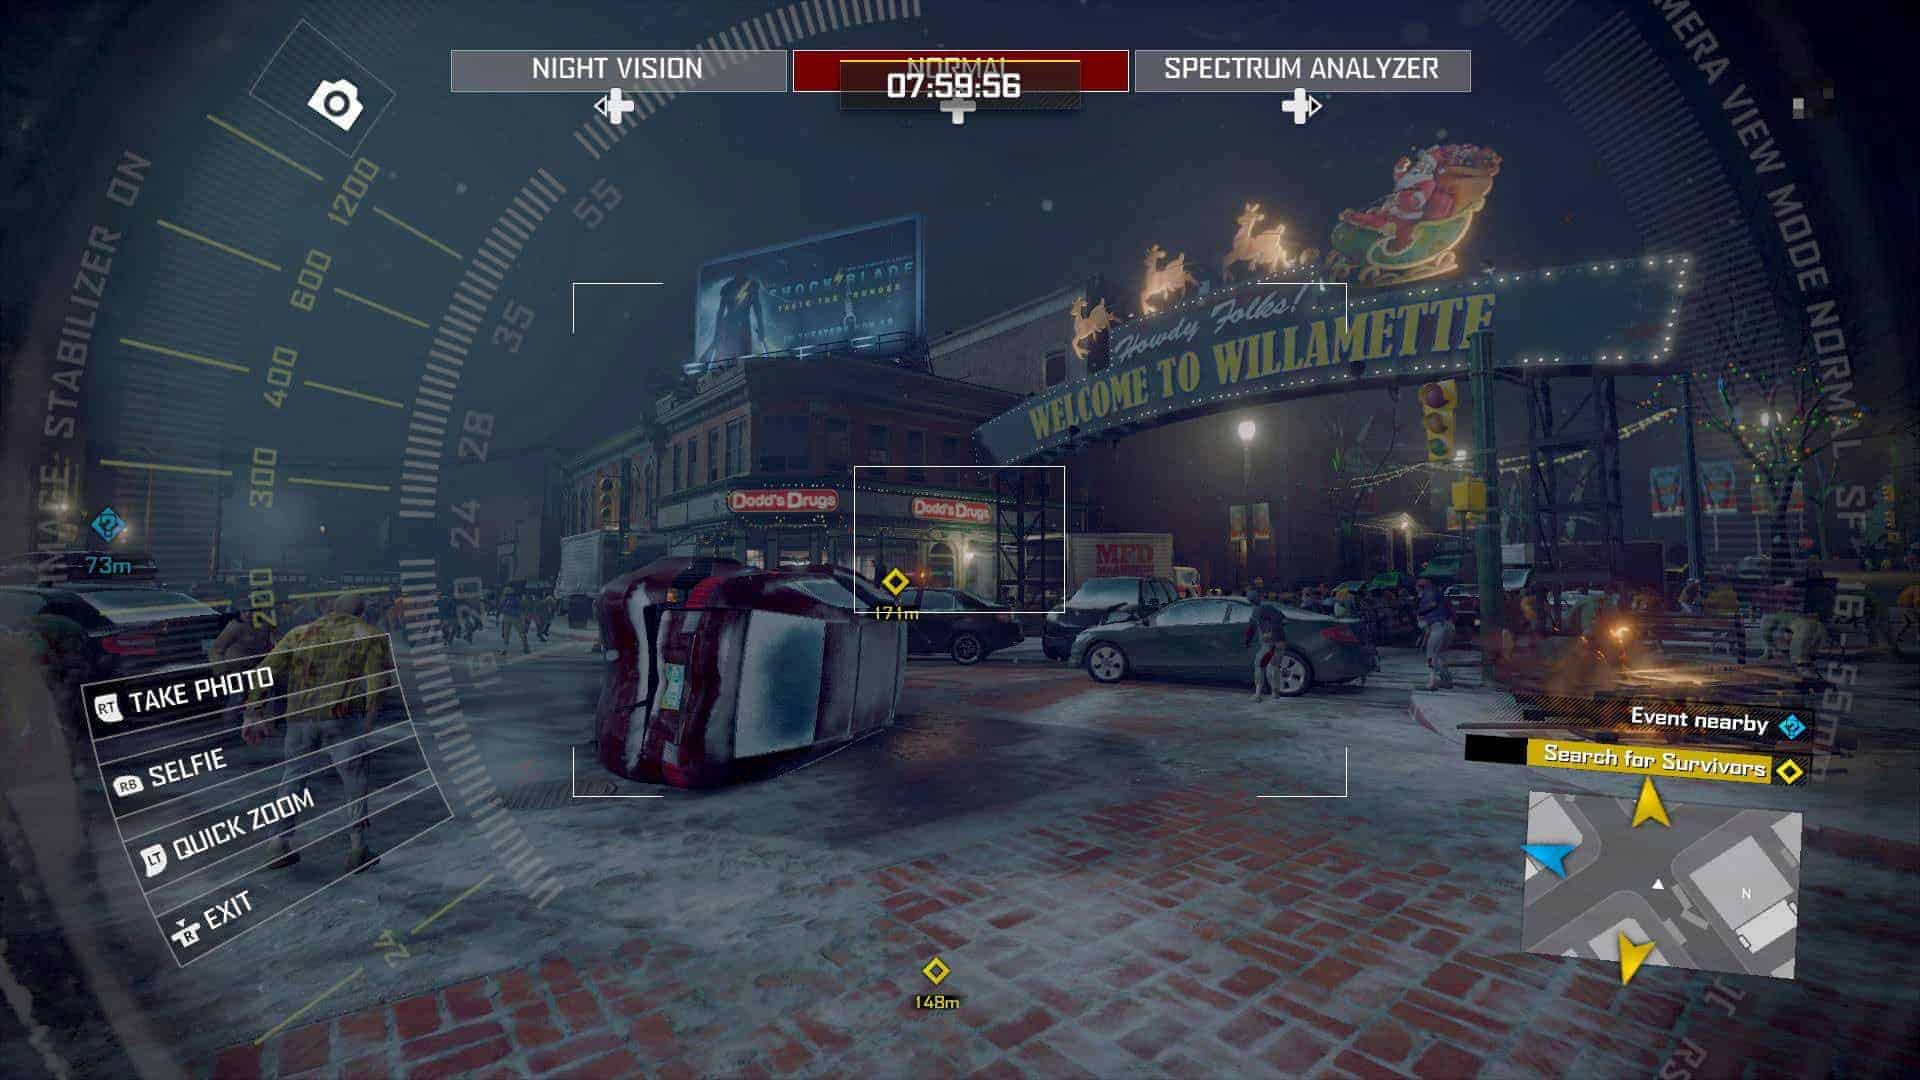 DEAD RISING 1 Free Download Full PC Game